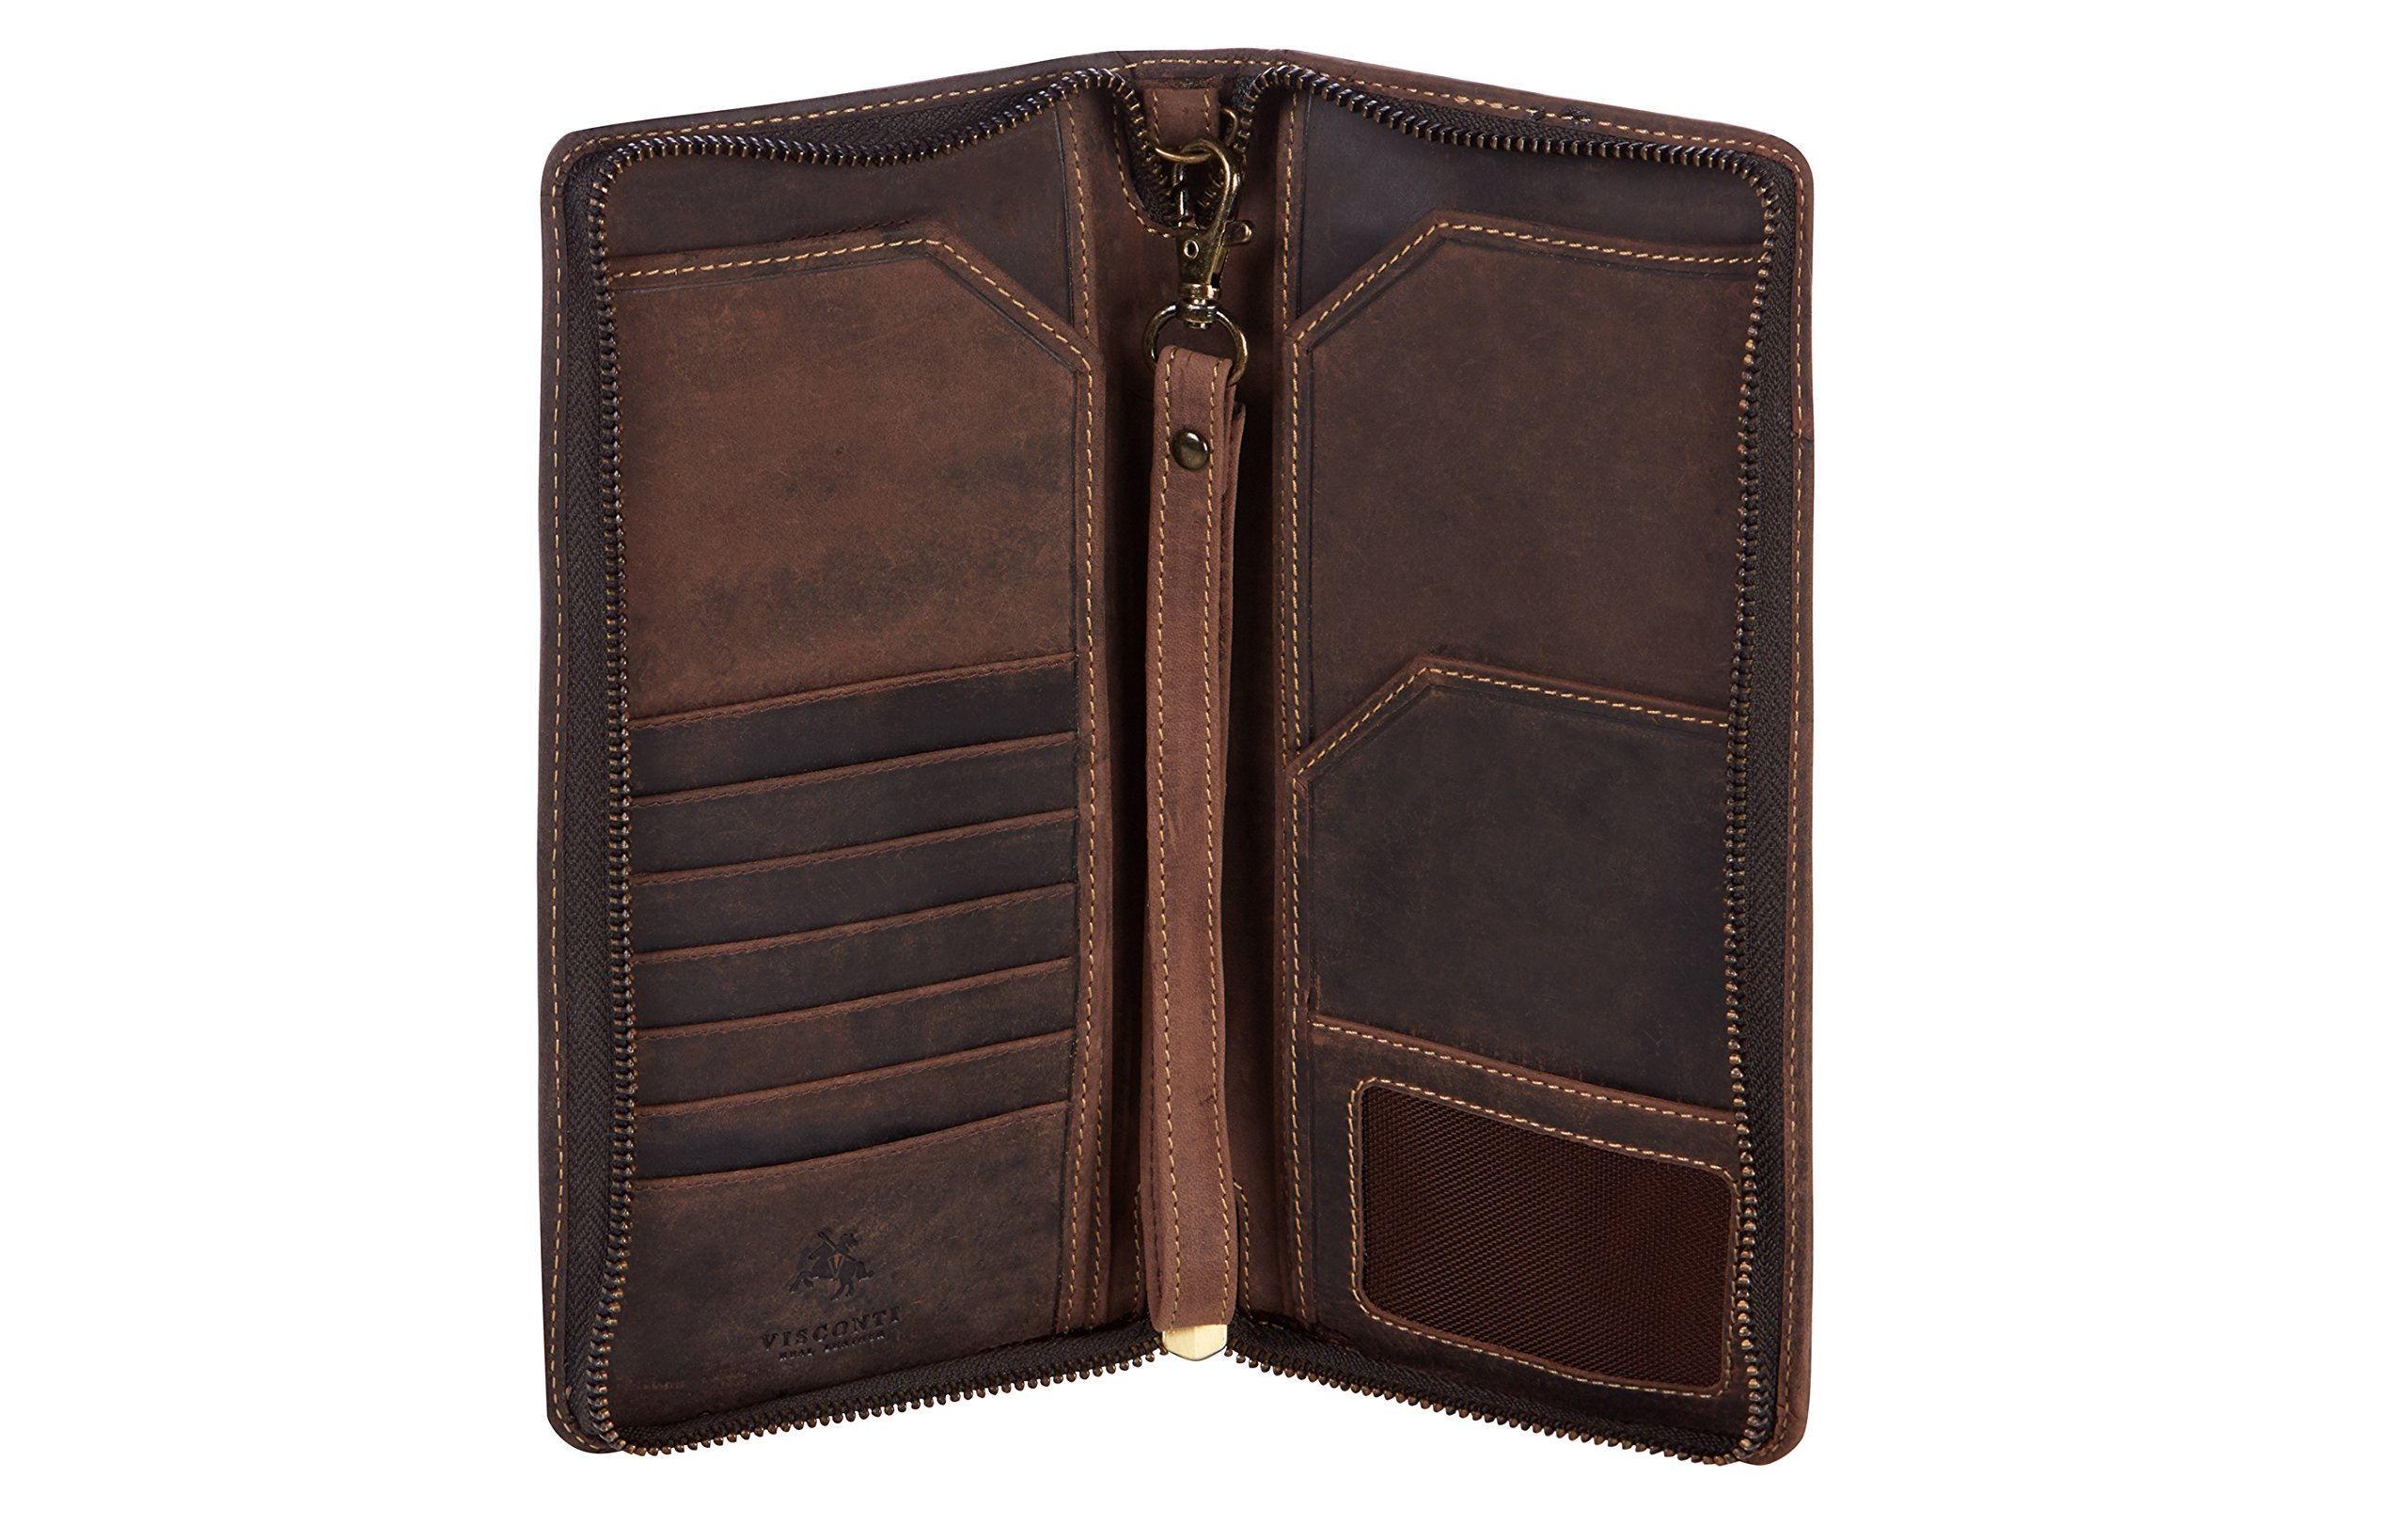 Visconti 728 Large Distressed Leather Travel Wallet for Passports, Tickets and Credit Cards (Brown)